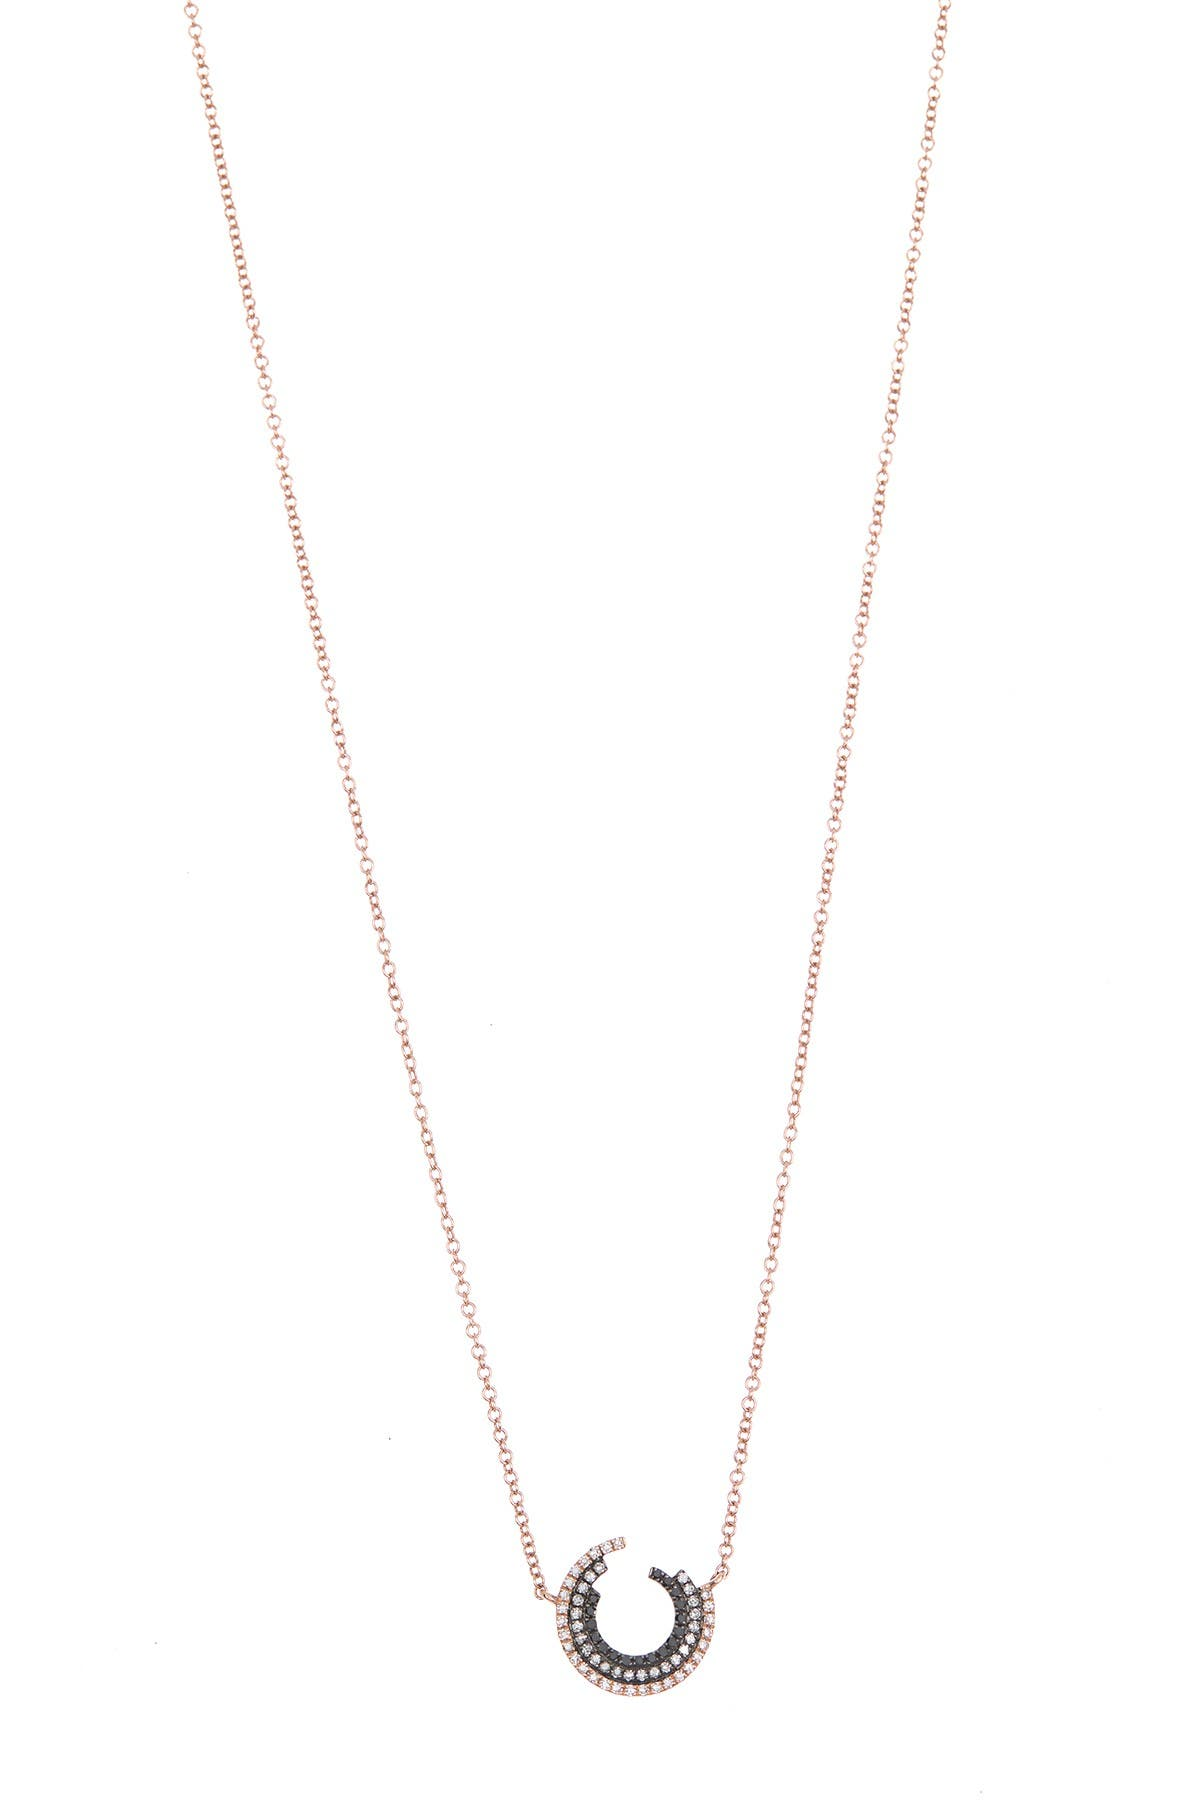 Image of EF Collection 14K Rose Gold Willow Fade Diamond Necklace - 0.19 ctw